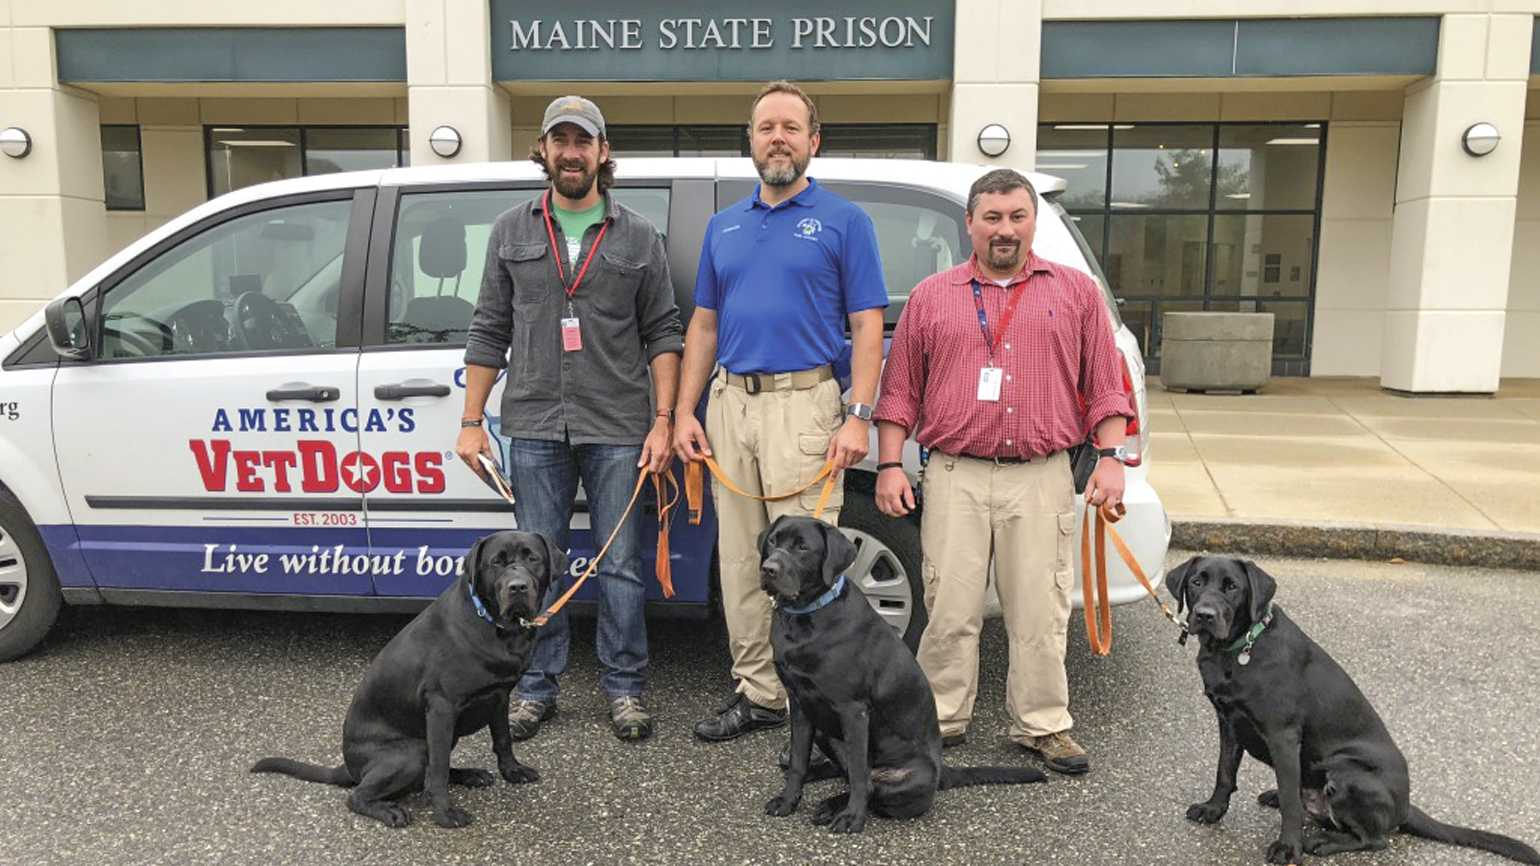 Craig (left) tells the whole story of this Maine State Prison program